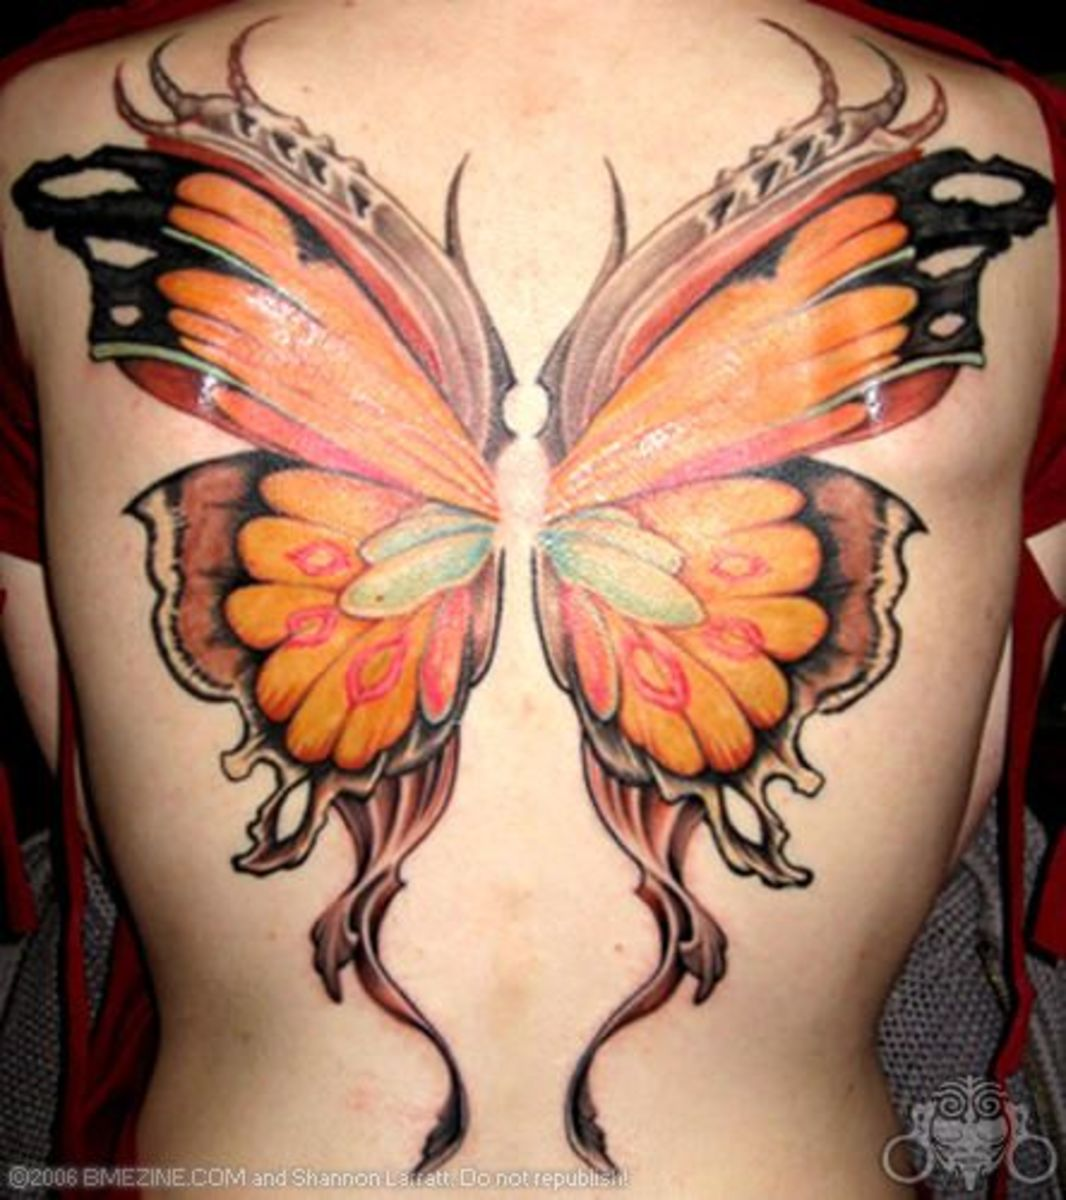 Full Back Body With Butterfly Tattoo Designs